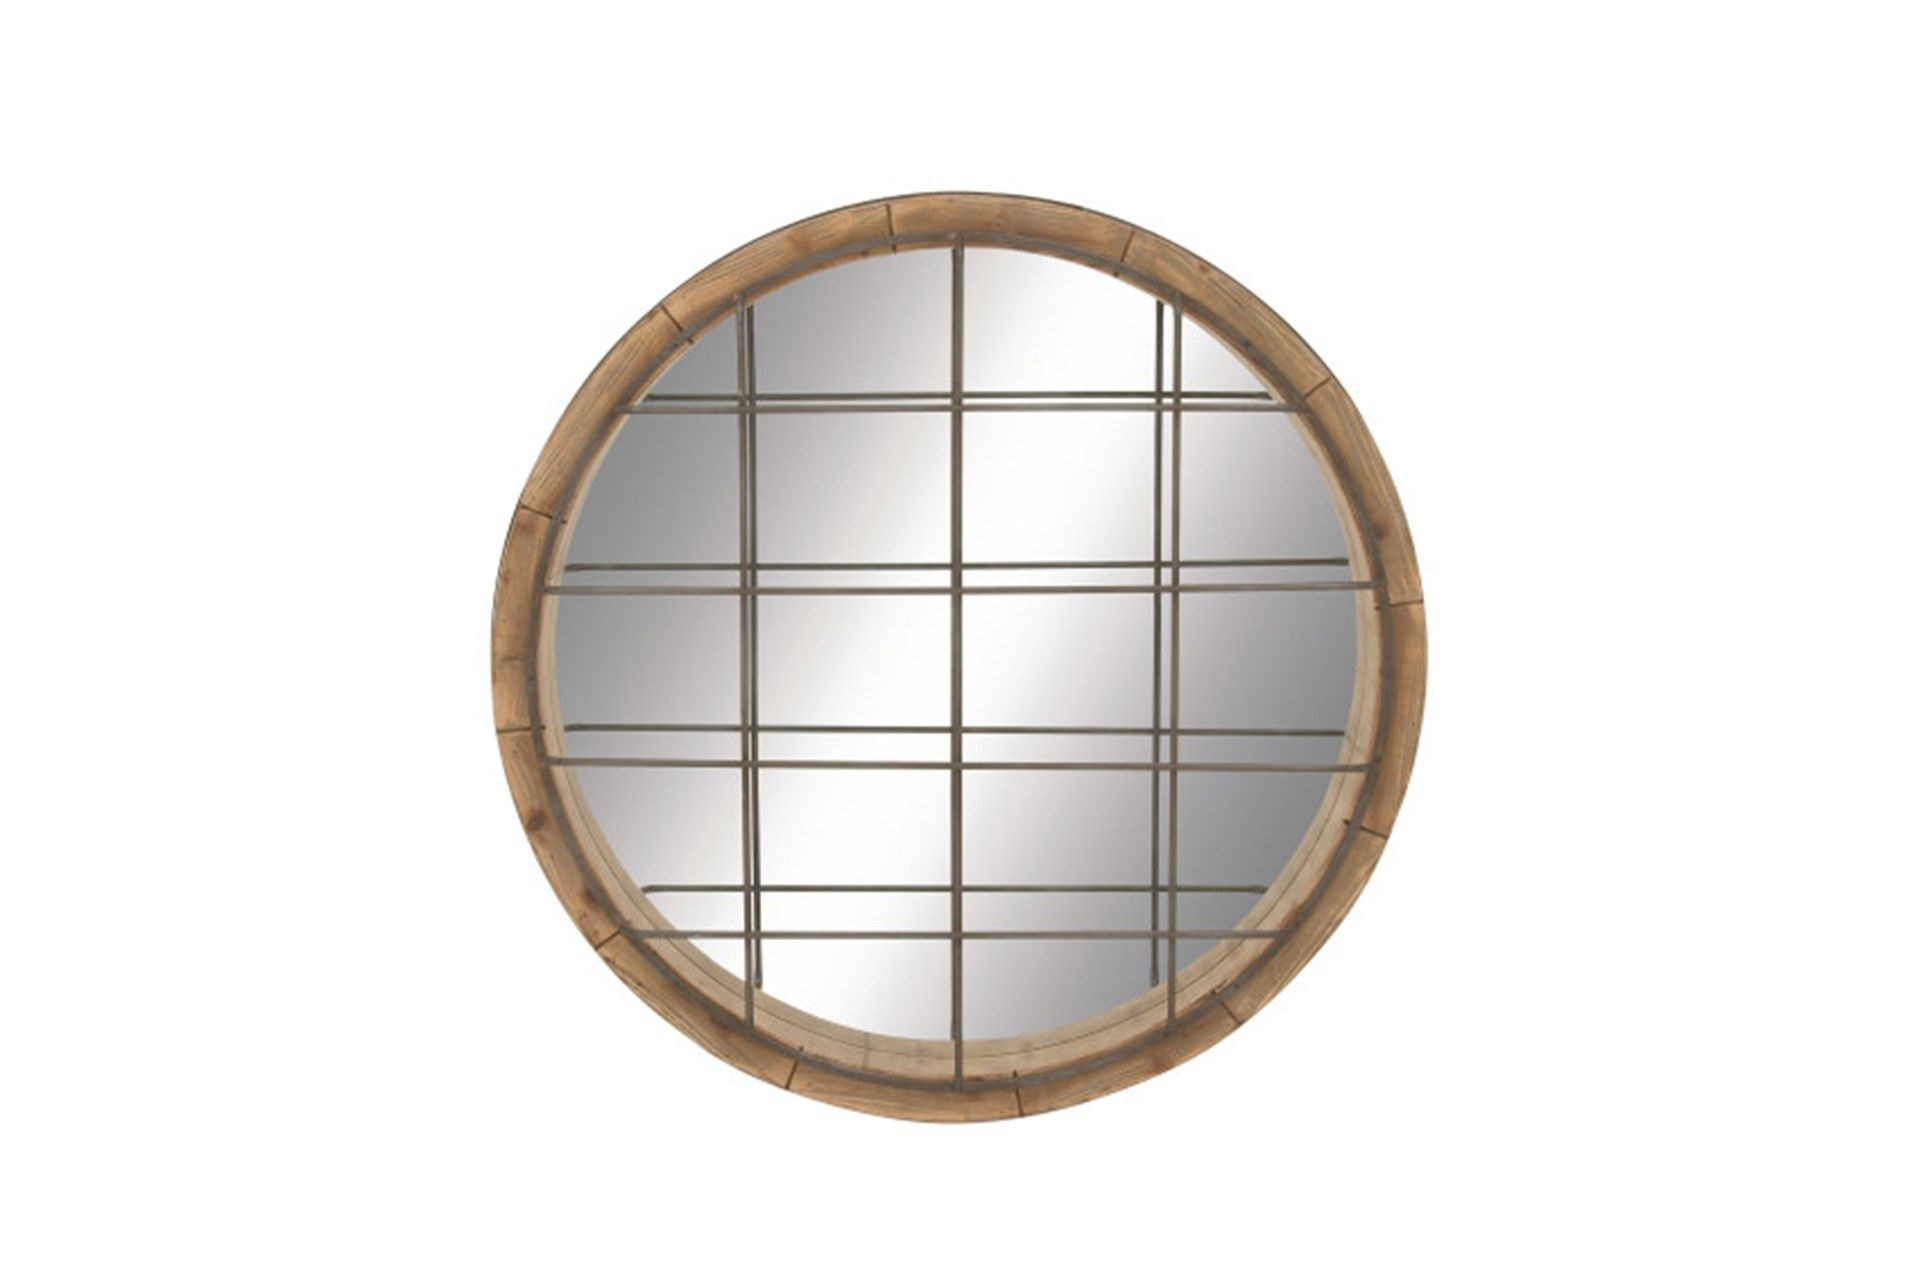 Shop For 48 Inch Wood Metal Grid Wall Mirror At Livingspaces Com Enjoy Free Store Pick Up Same Day Industrial Wall Mirrors Mirror Wall Wall Mirrors Entryway